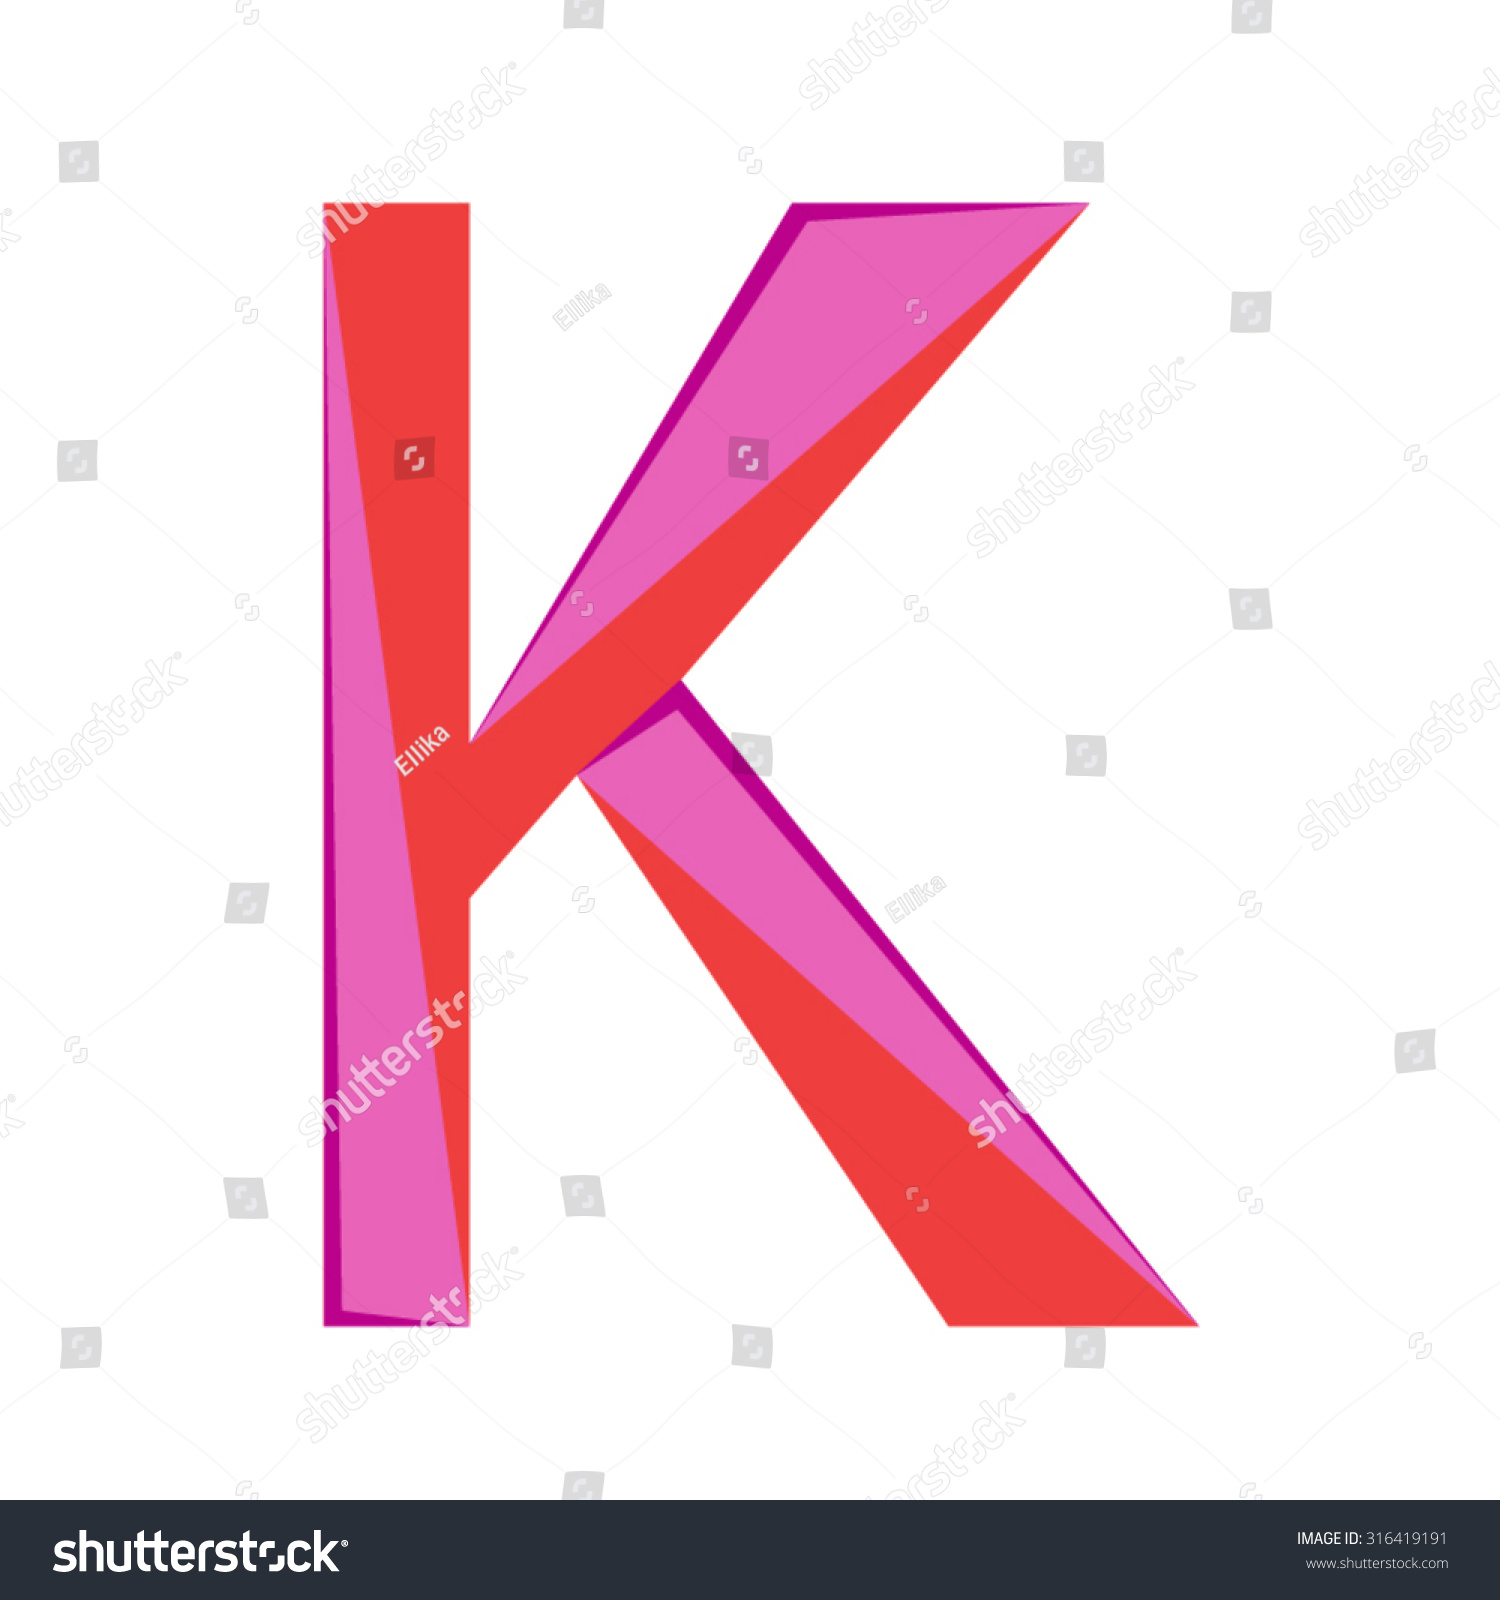 Abstract letter k logo design template stock vector 316419191 abstract letter k logo design template colorful creative sign vector icon spiritdancerdesigns Images